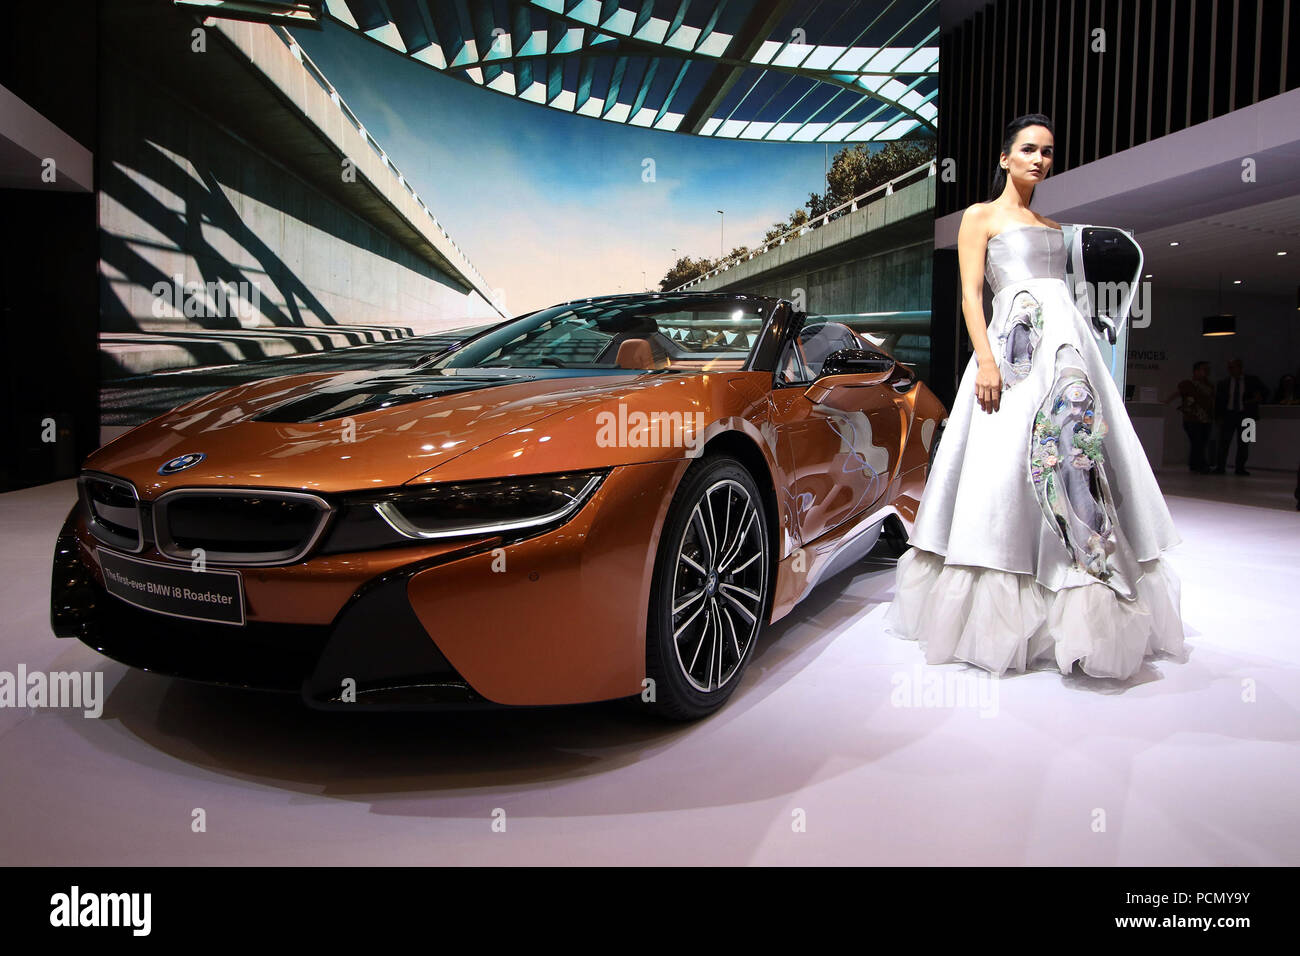 Tangerang Indonesia August 3 2018 A Bmw I8 Roadster Motor Co